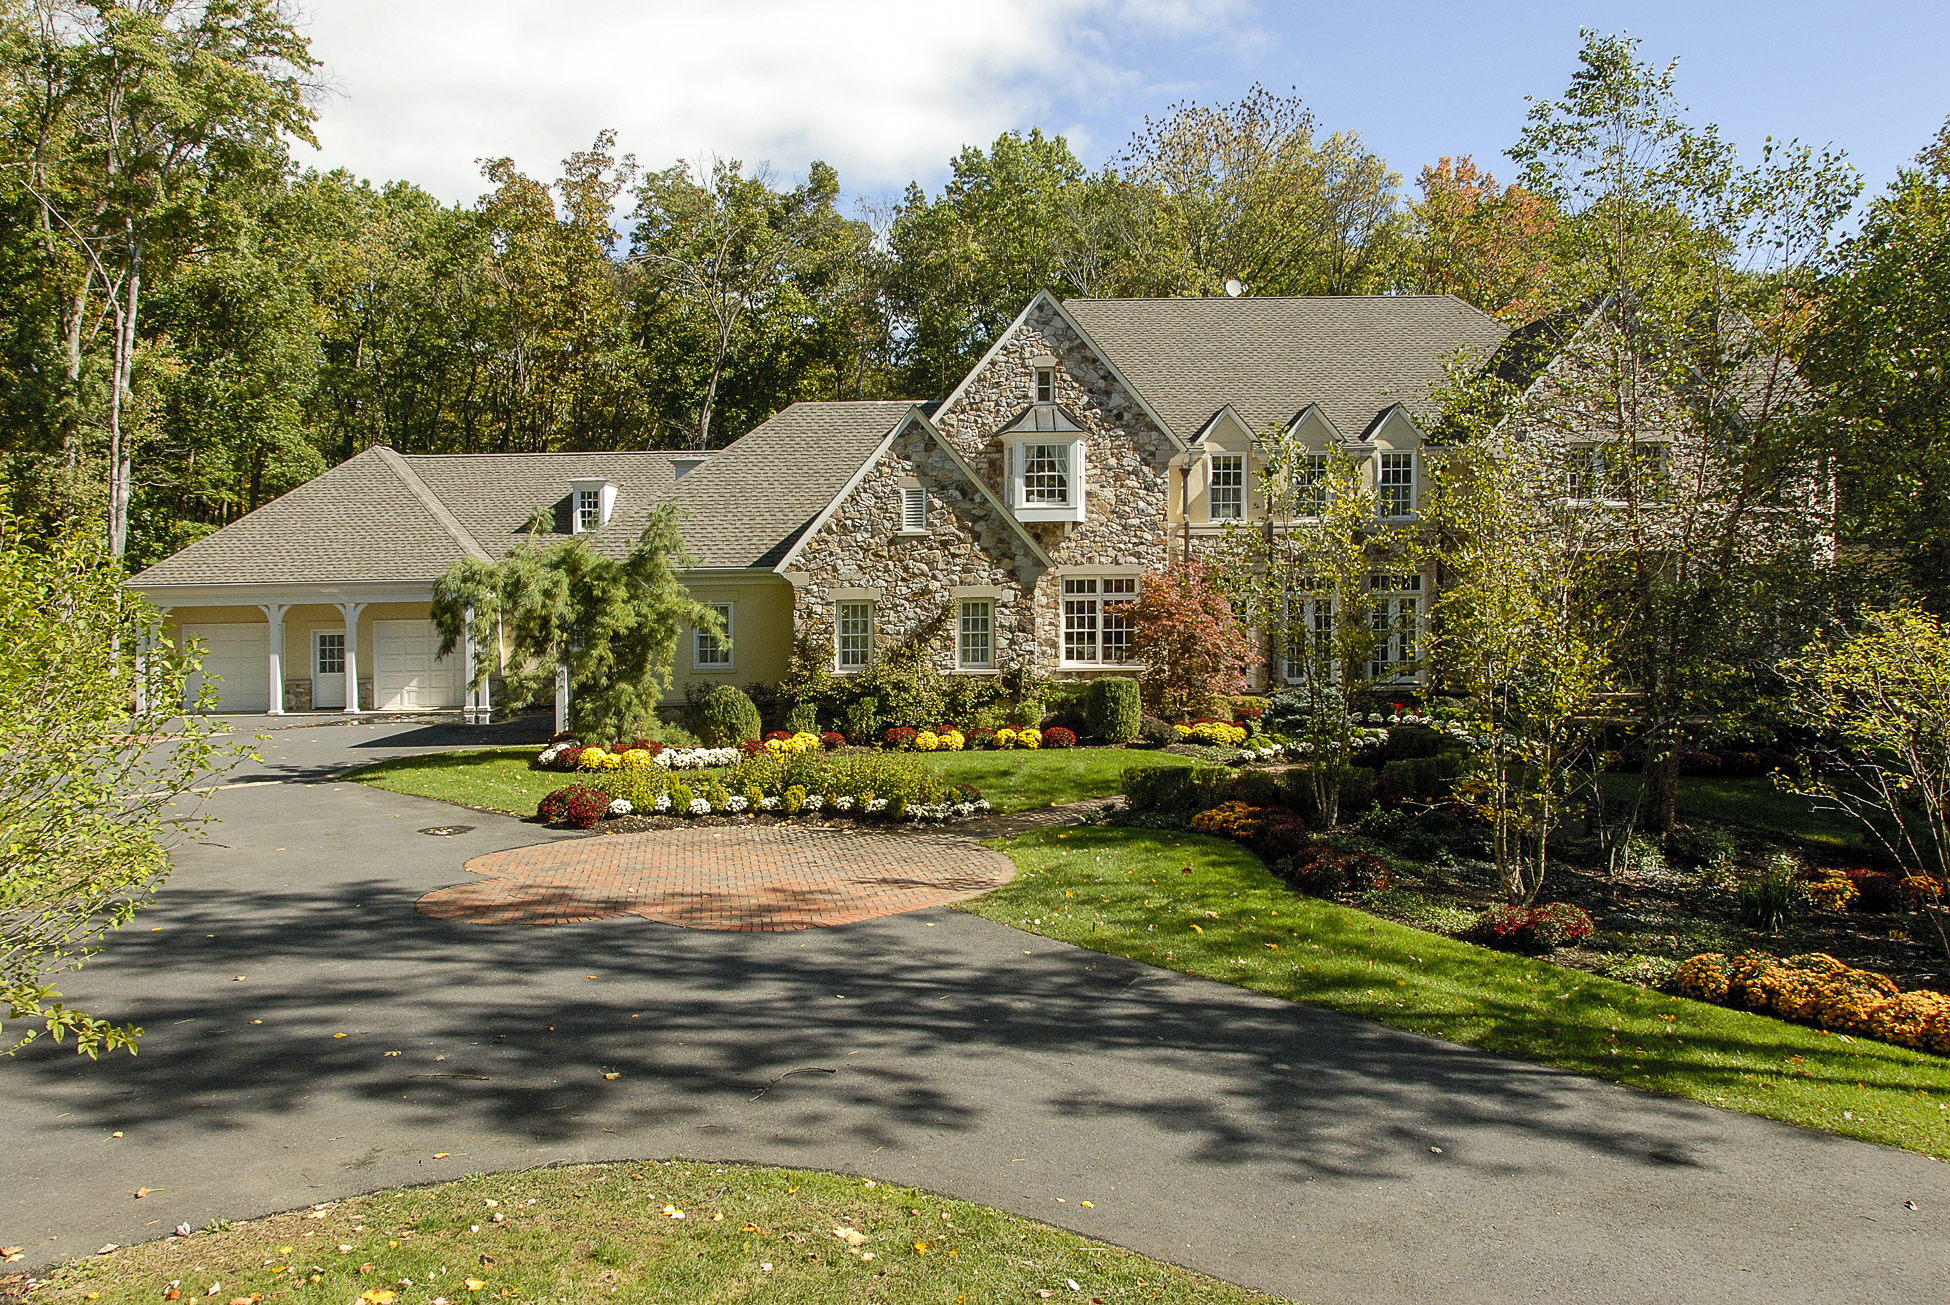 Single Family Home for Sale at Magnificent Manor Home in Princeton's Coveted Rushbrook 27 Running Cedar Road Princeton, New Jersey, 08540 United States